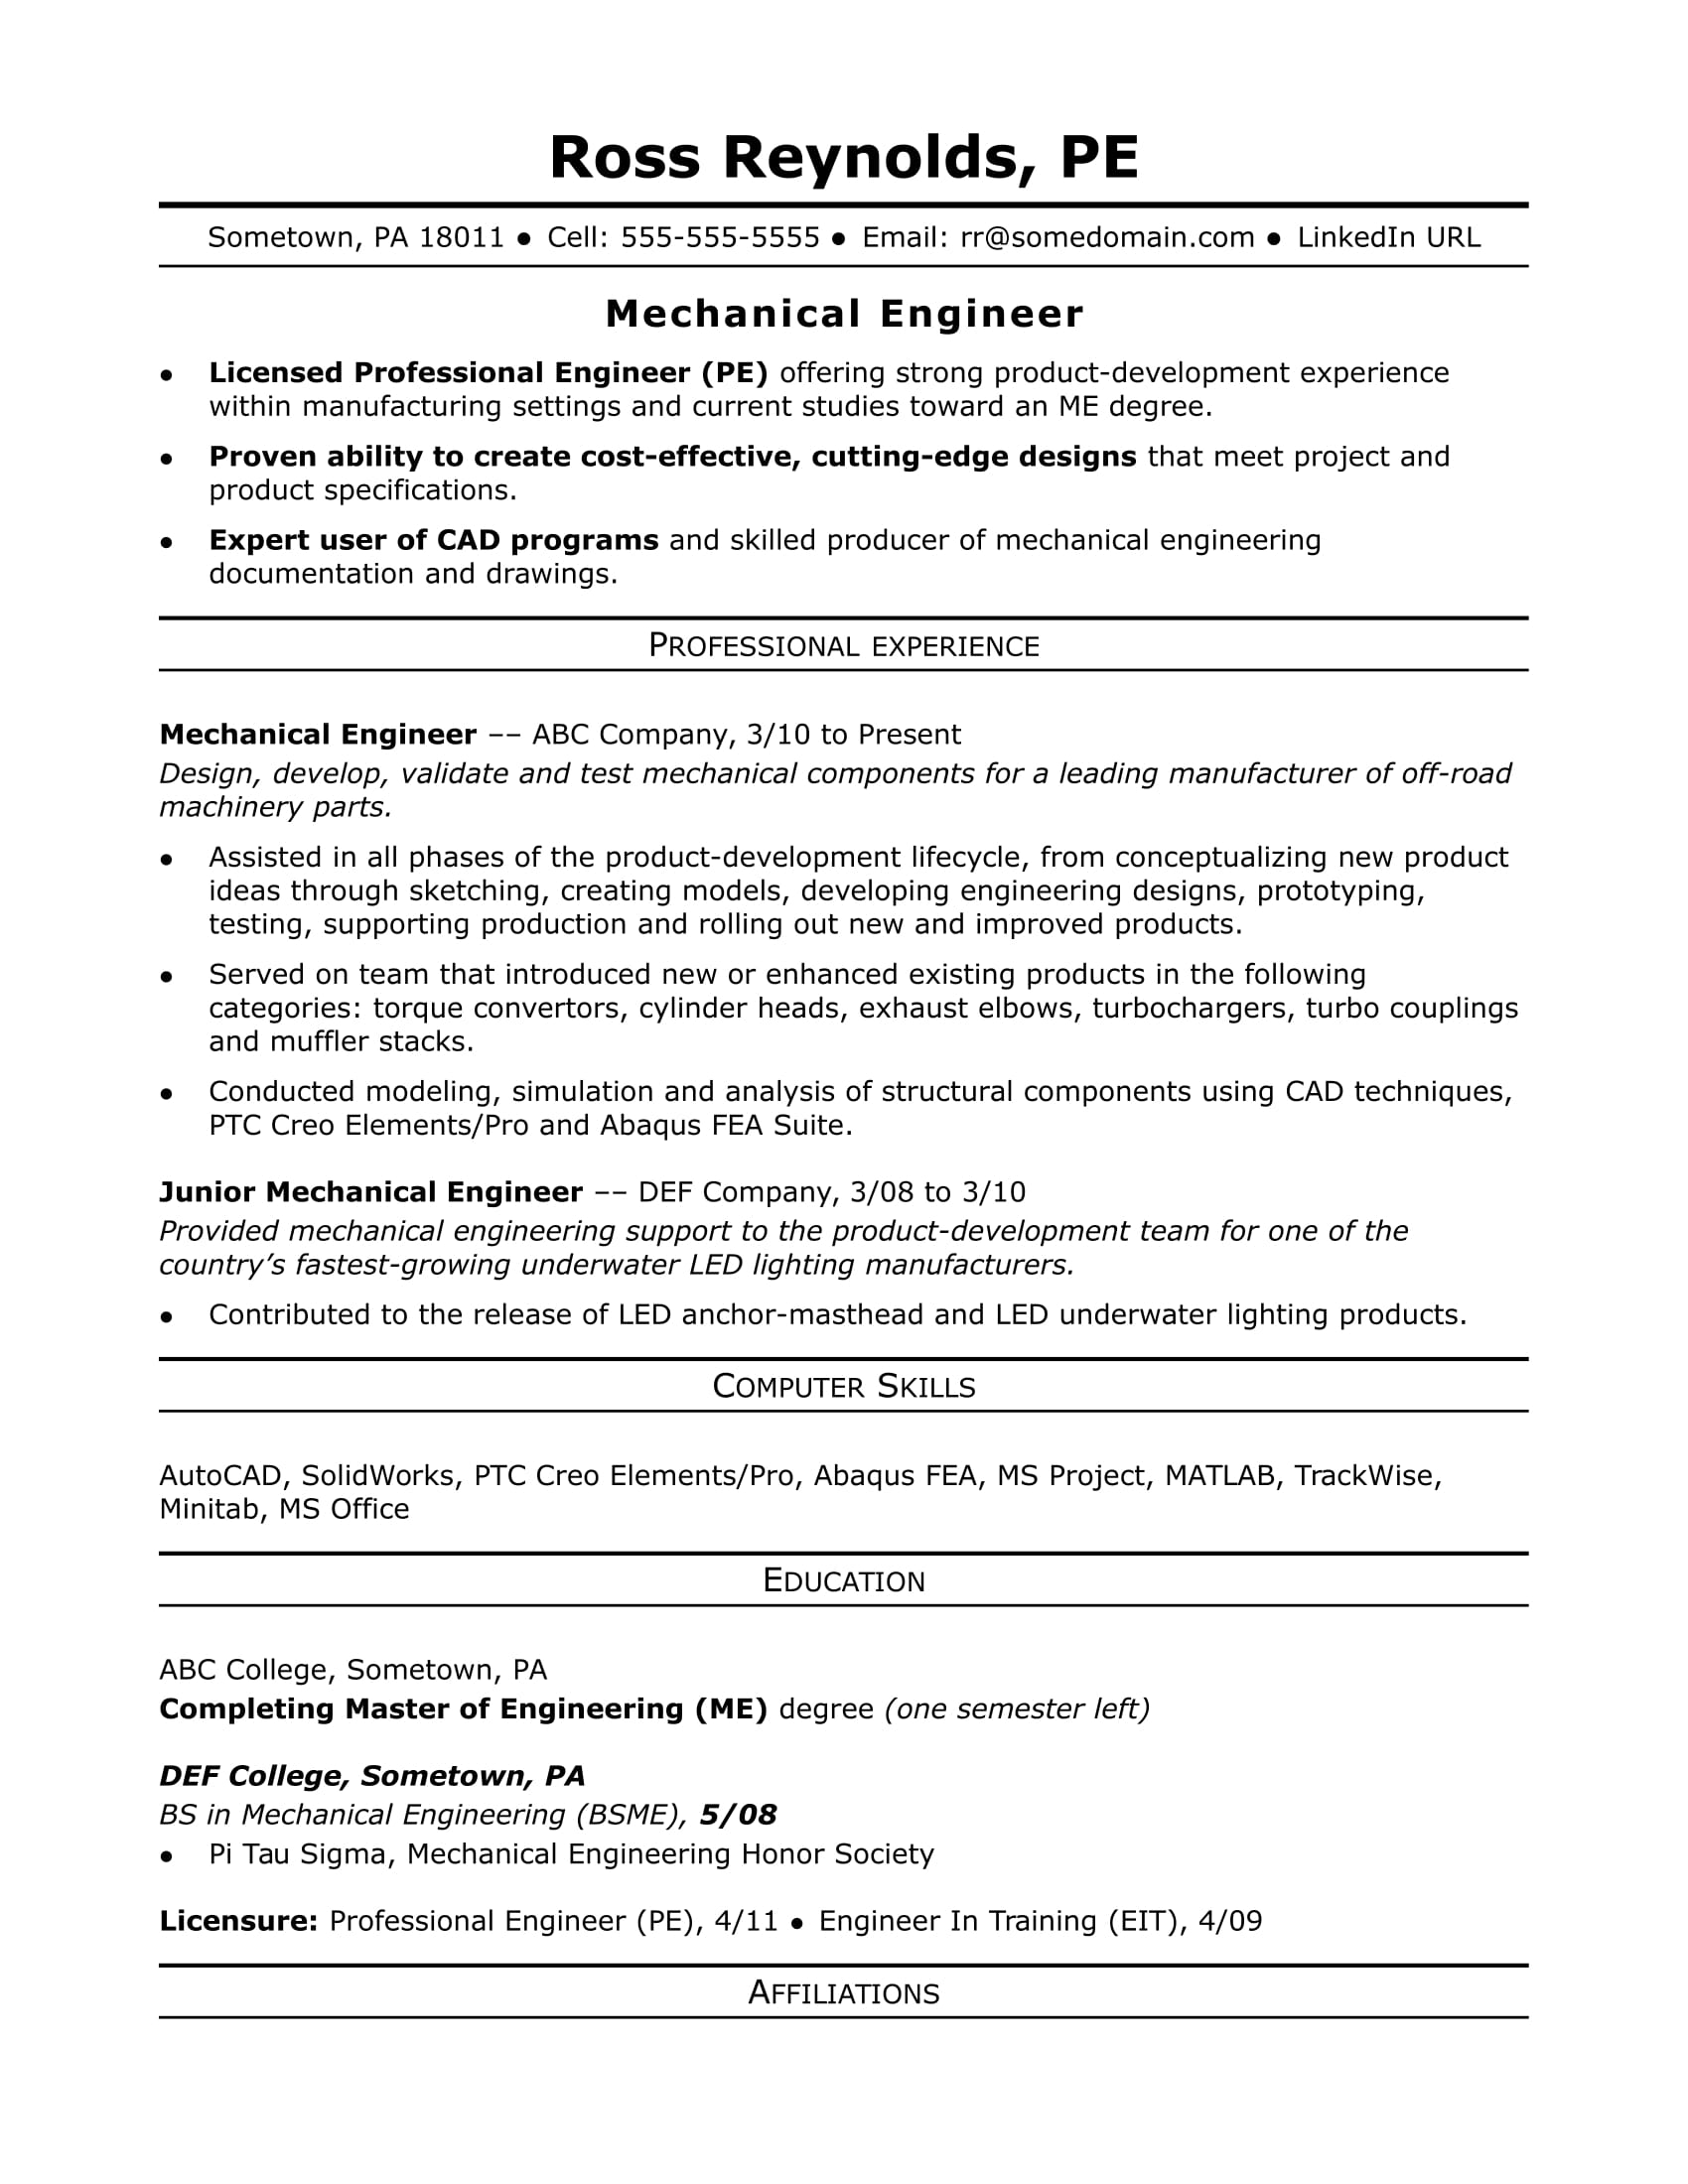 sample resume for a midlevel mechanical engineer - Project Engineer Resume Template